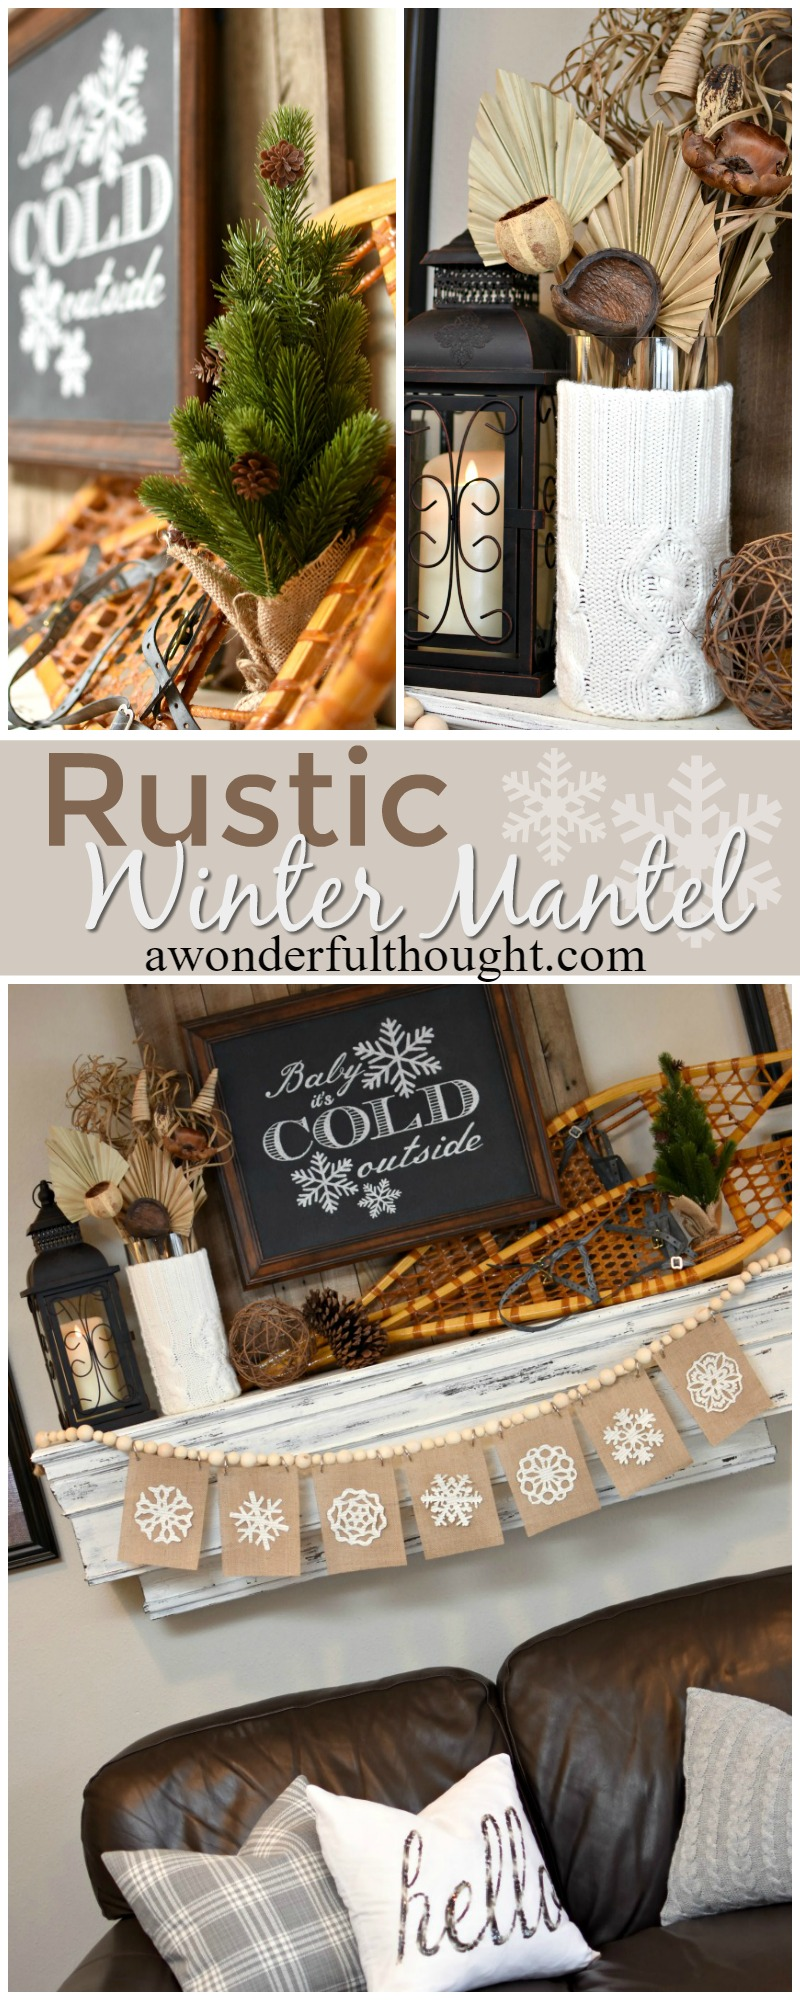 Rustic Winter Mantel A Wonderful Thought